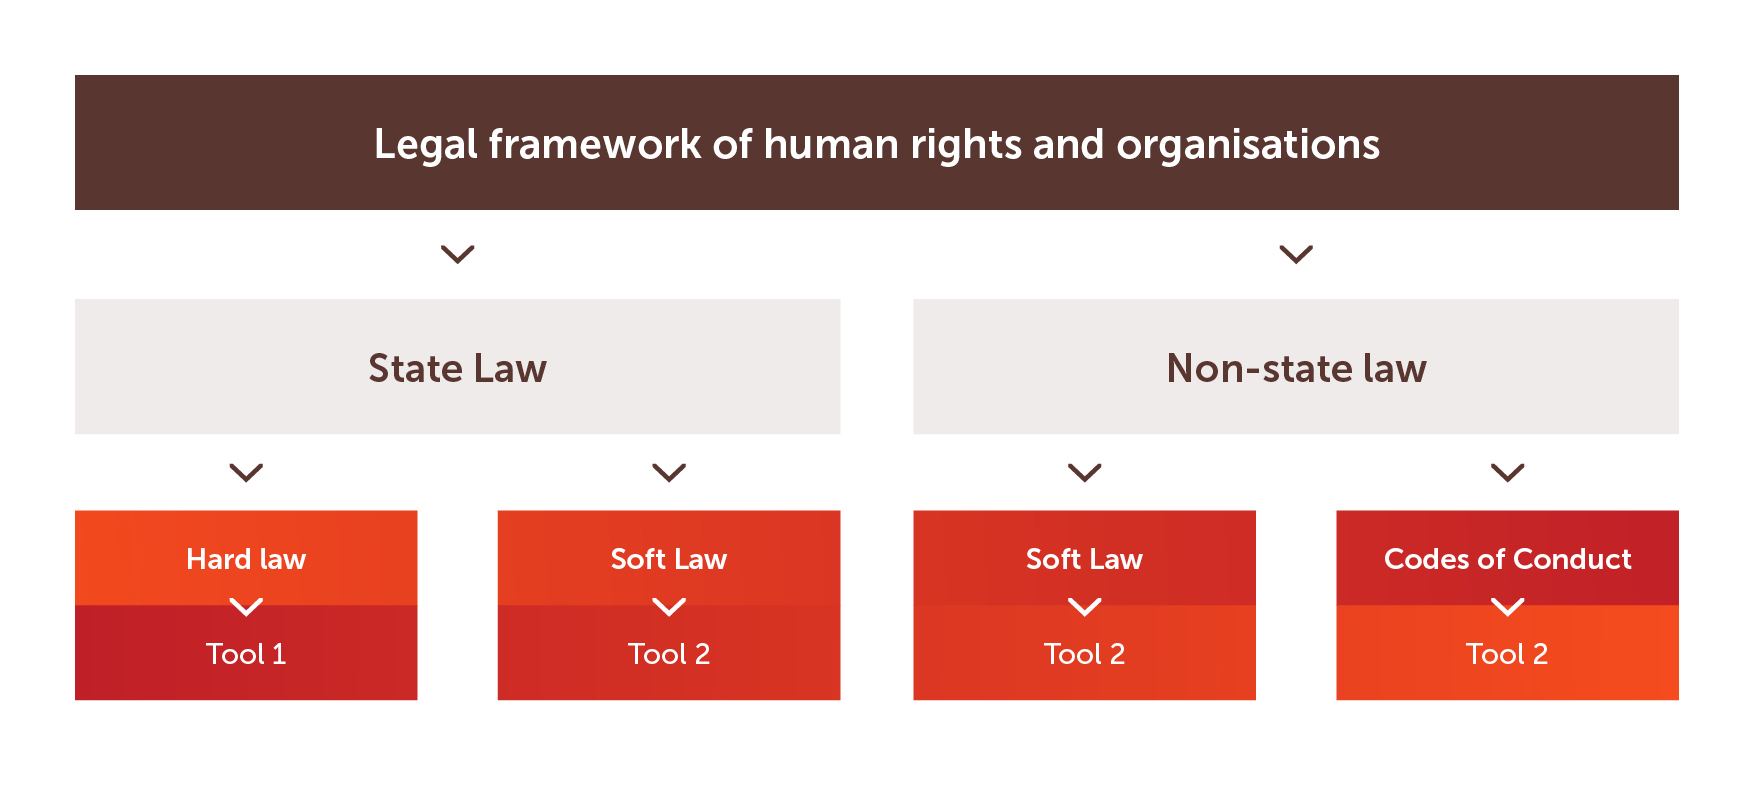 "The first group refers to regulations. Tools one and two explain the general legal framework and its scope, distinguishing between hard (binding) law and soft (non-binding) law. The toolbox also clarifies when soft law has been endorsed by the state, by ""non-state organisations"" such as NGOs, or as a result of multi-stakeholder initiatives."